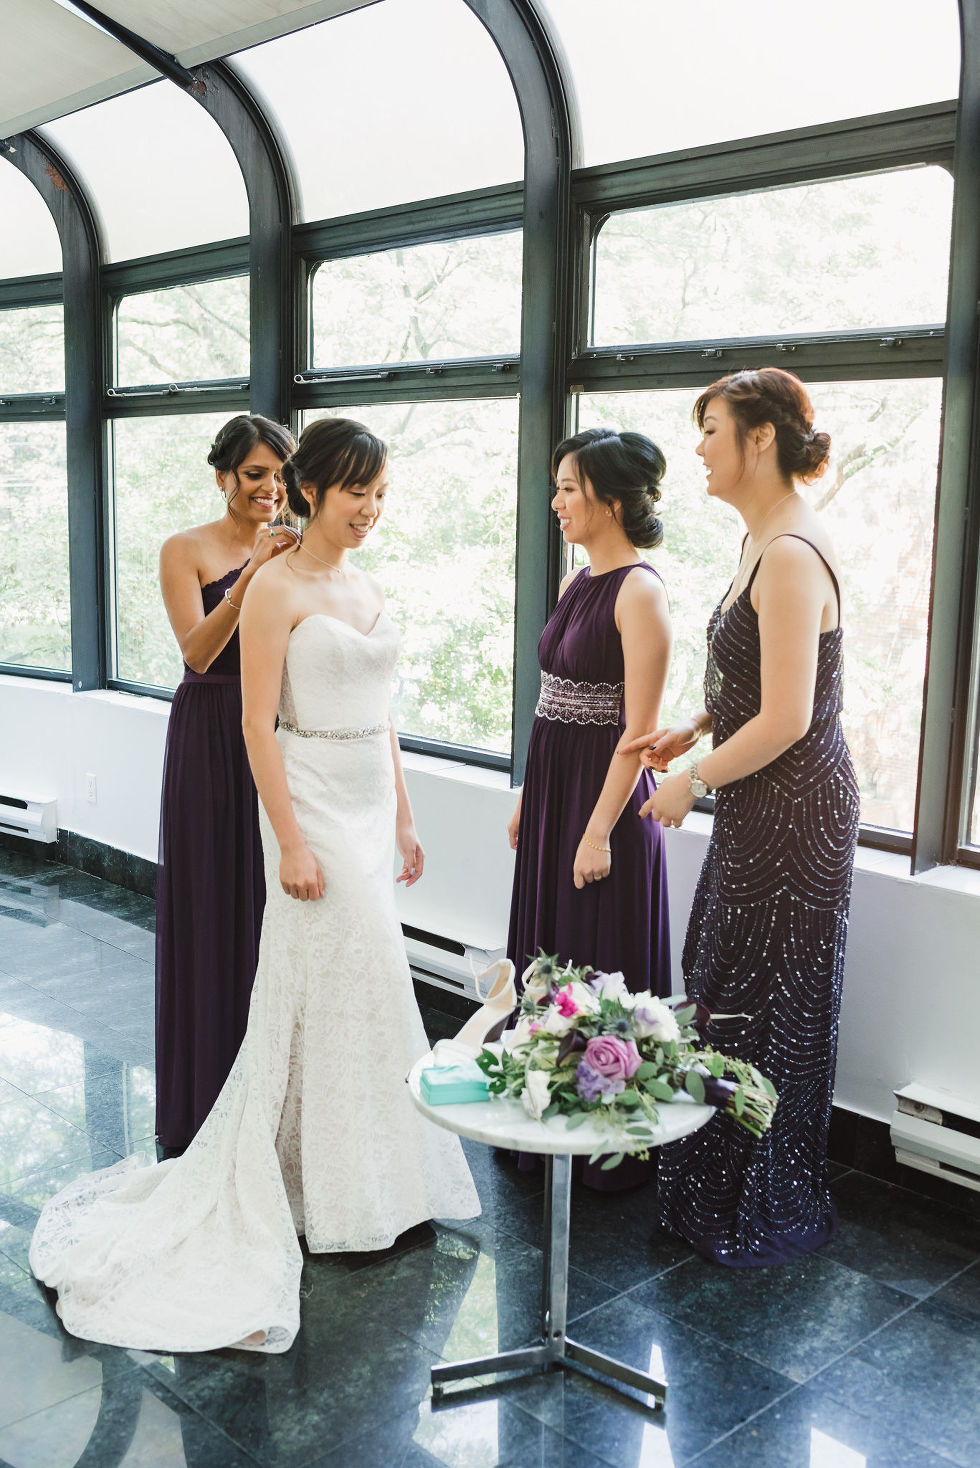 bride in her wedding dress stands in front of 2 bridesmaids as the third bridesmaid helps put on brides necklace behind her before her Parisian inspired wedding at La Maquette in Toronto Ontario